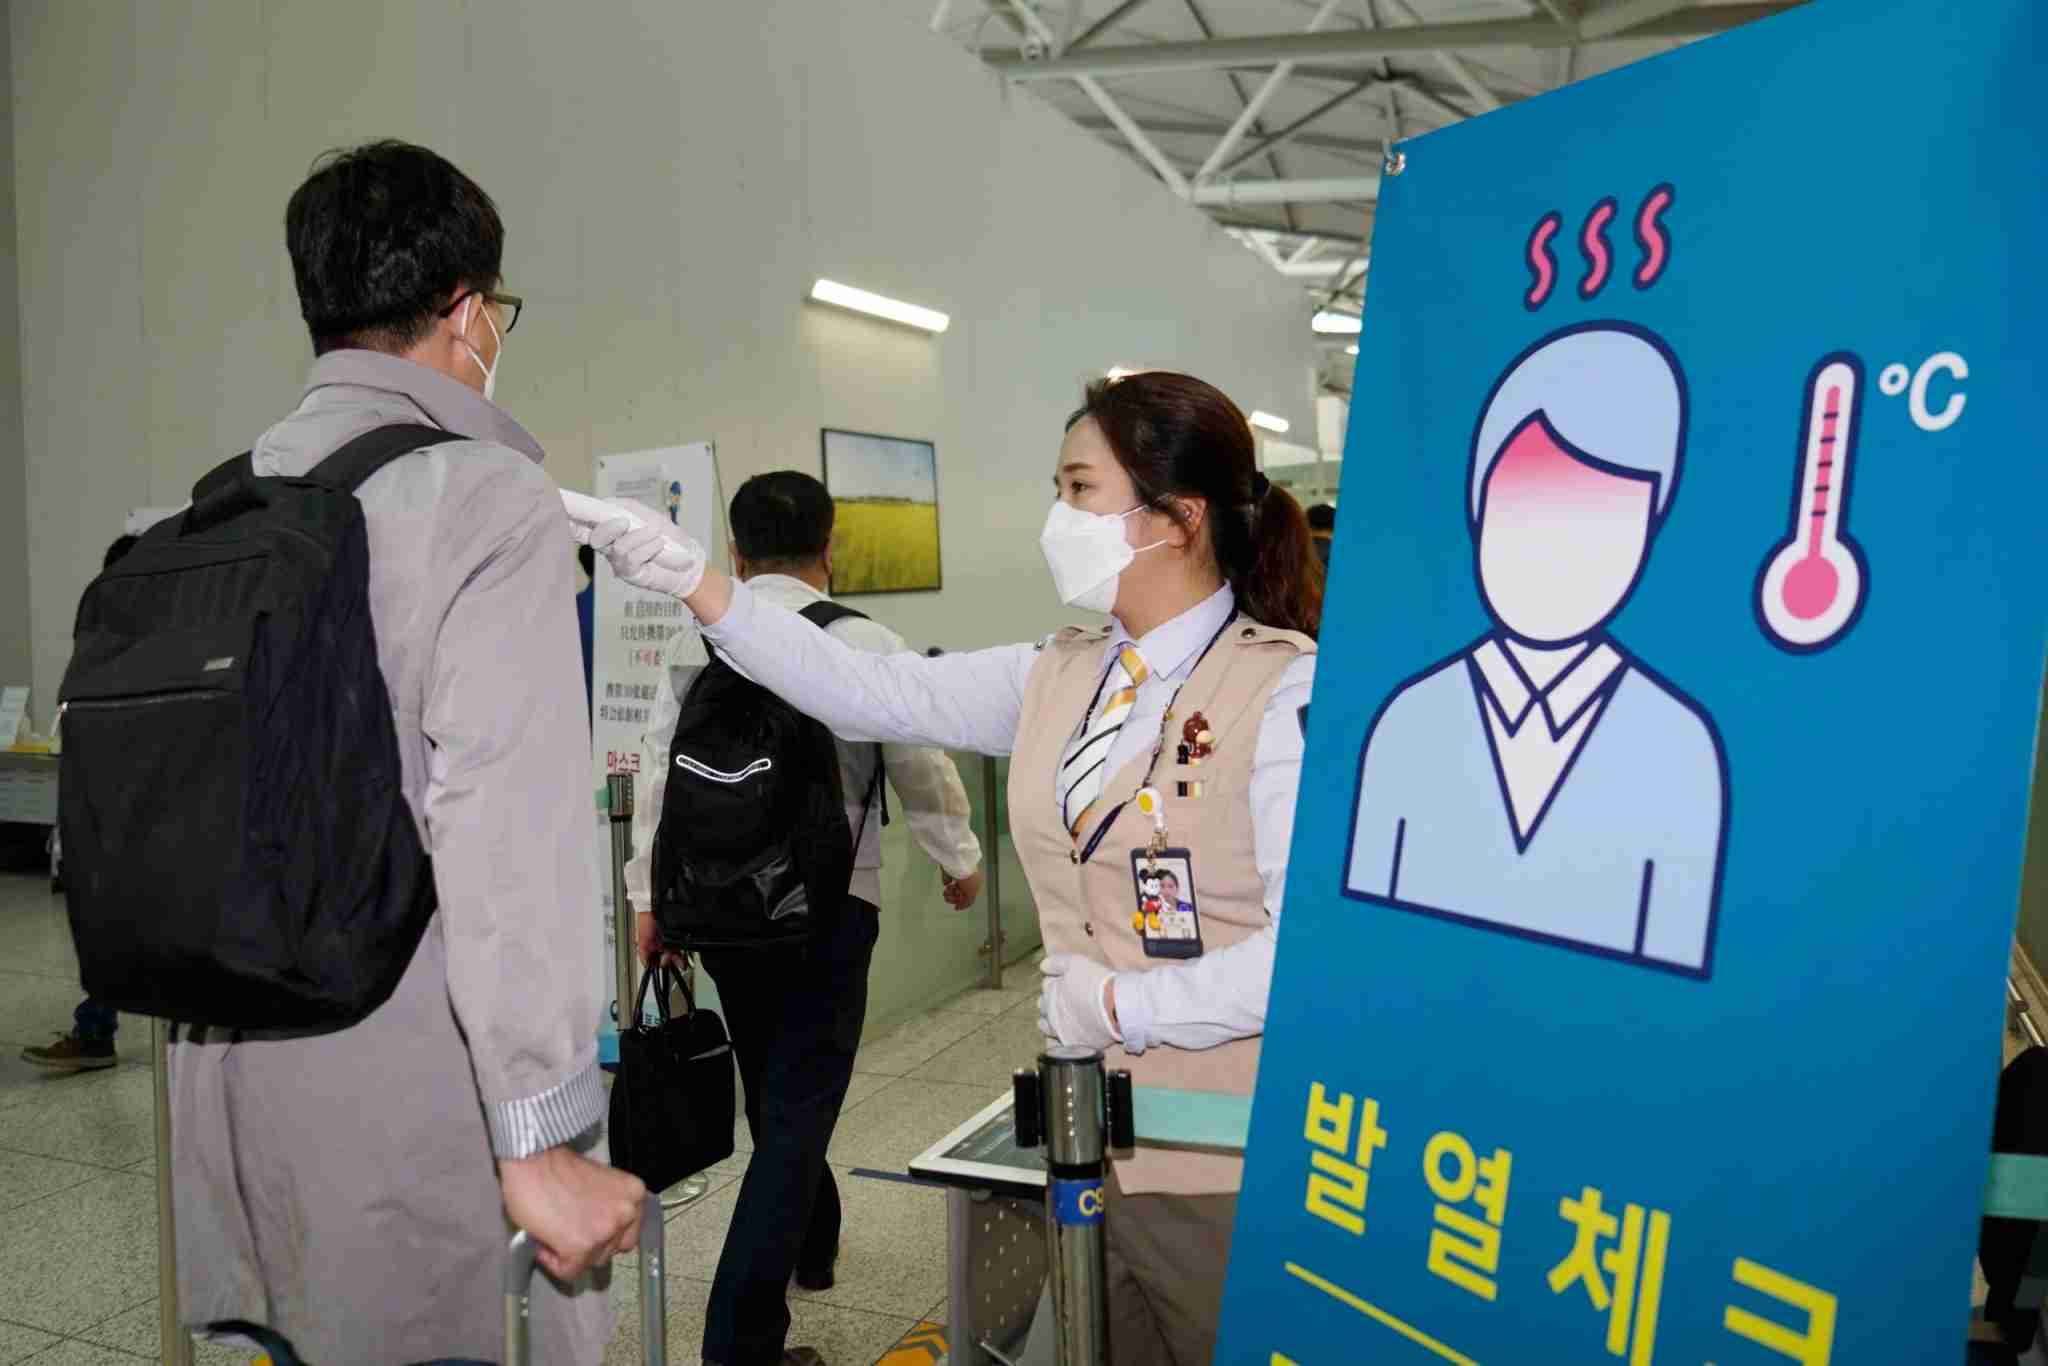 INCHEON, SOUTH KOREA - MAY 10: An employee of Samsung has his temperature checked before boarding a plane at Incheon International Airport on May 10, 2020 in Incheon, South Korea. More than 210 employees from South Korea